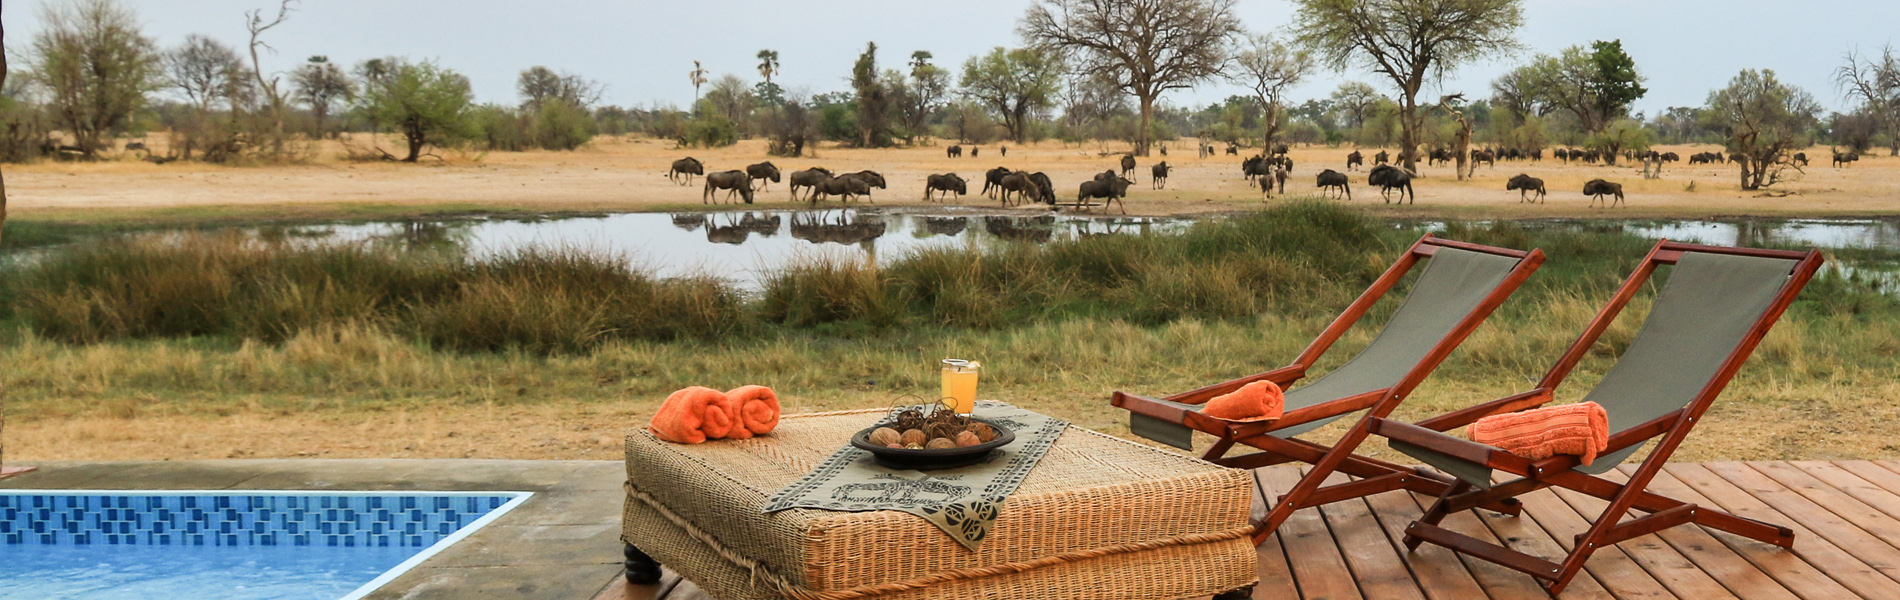 fly-in lodge safari Zimbabwe